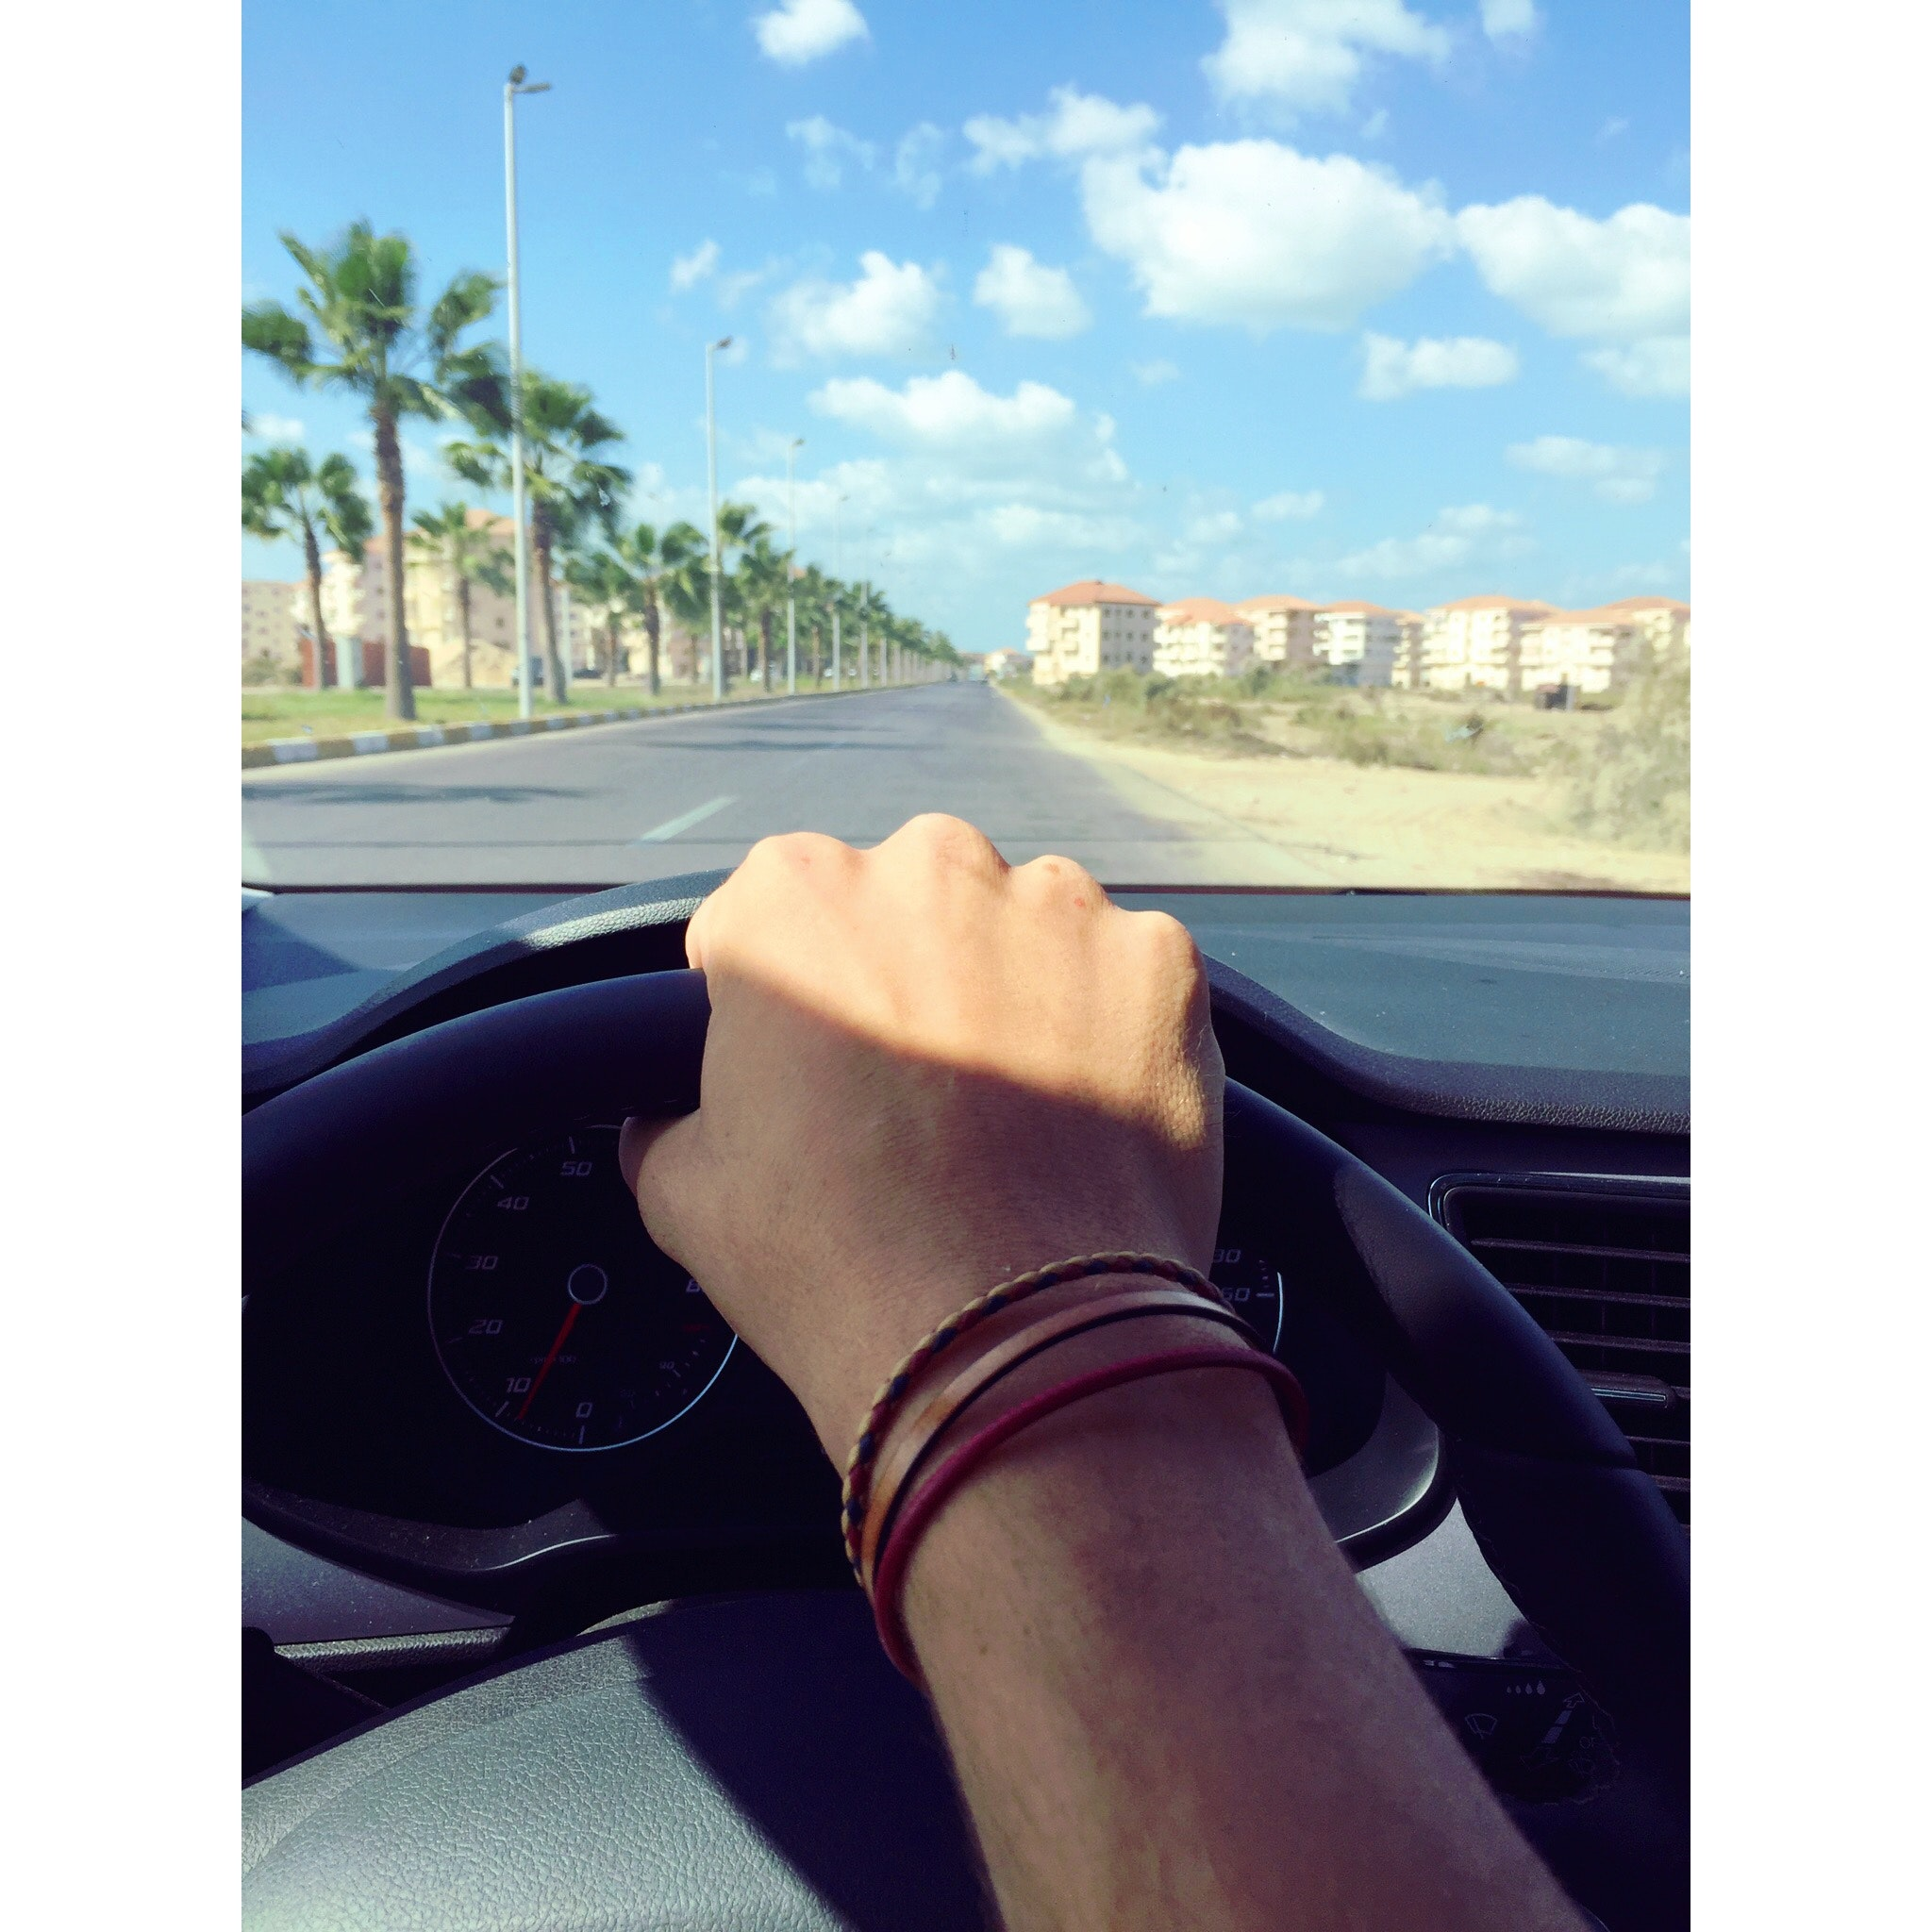 Person withe bracelets holding black steering wheel photo